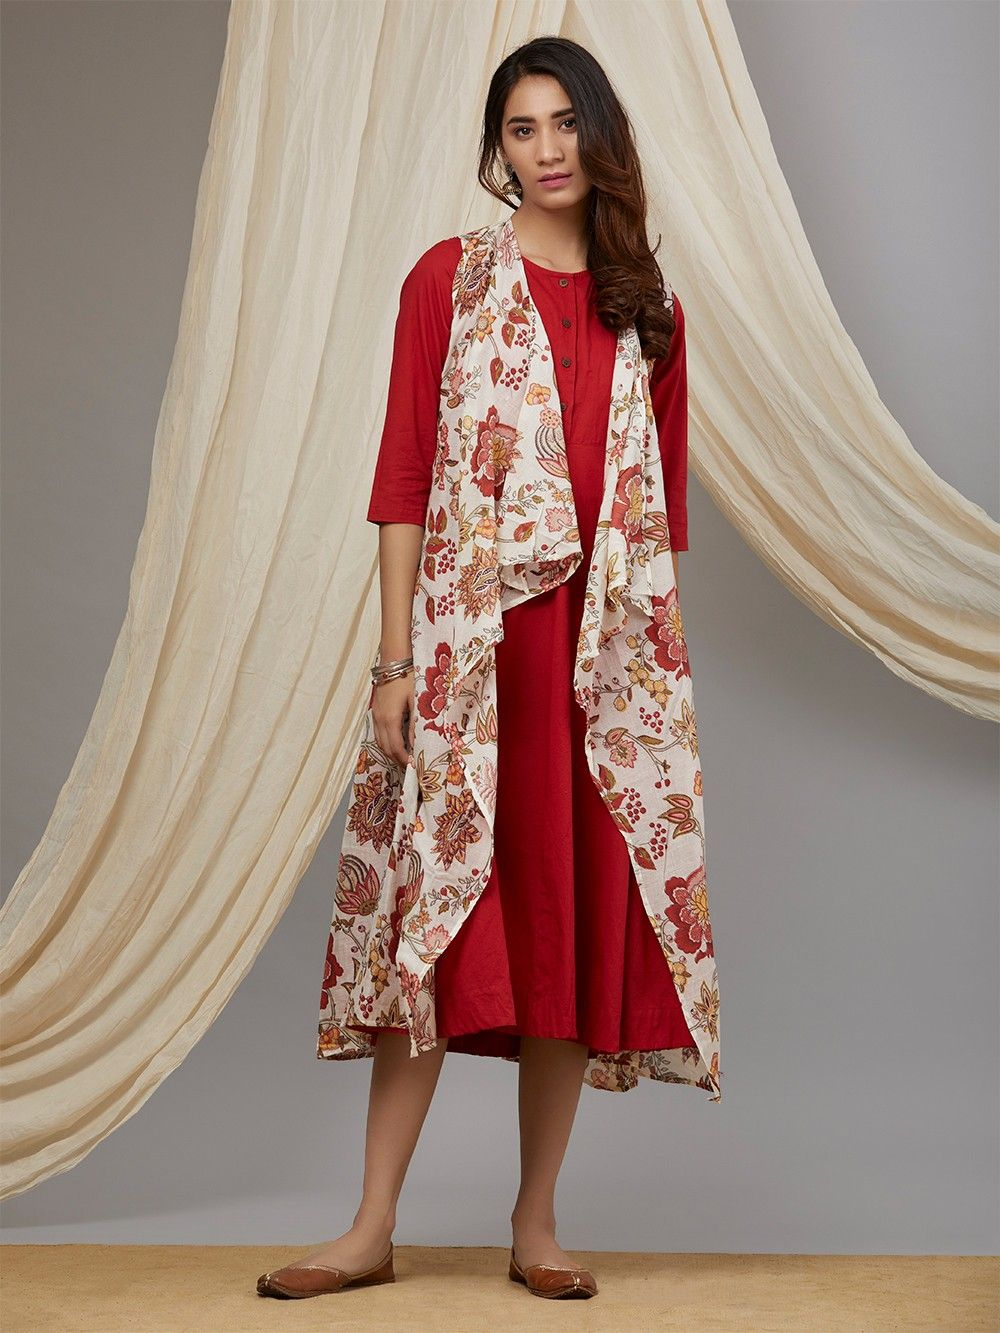 Red White Floral Printed Cotton Mulmul Dress with Jacket - Set of 2. Hover  to zoom 11d3ae60b